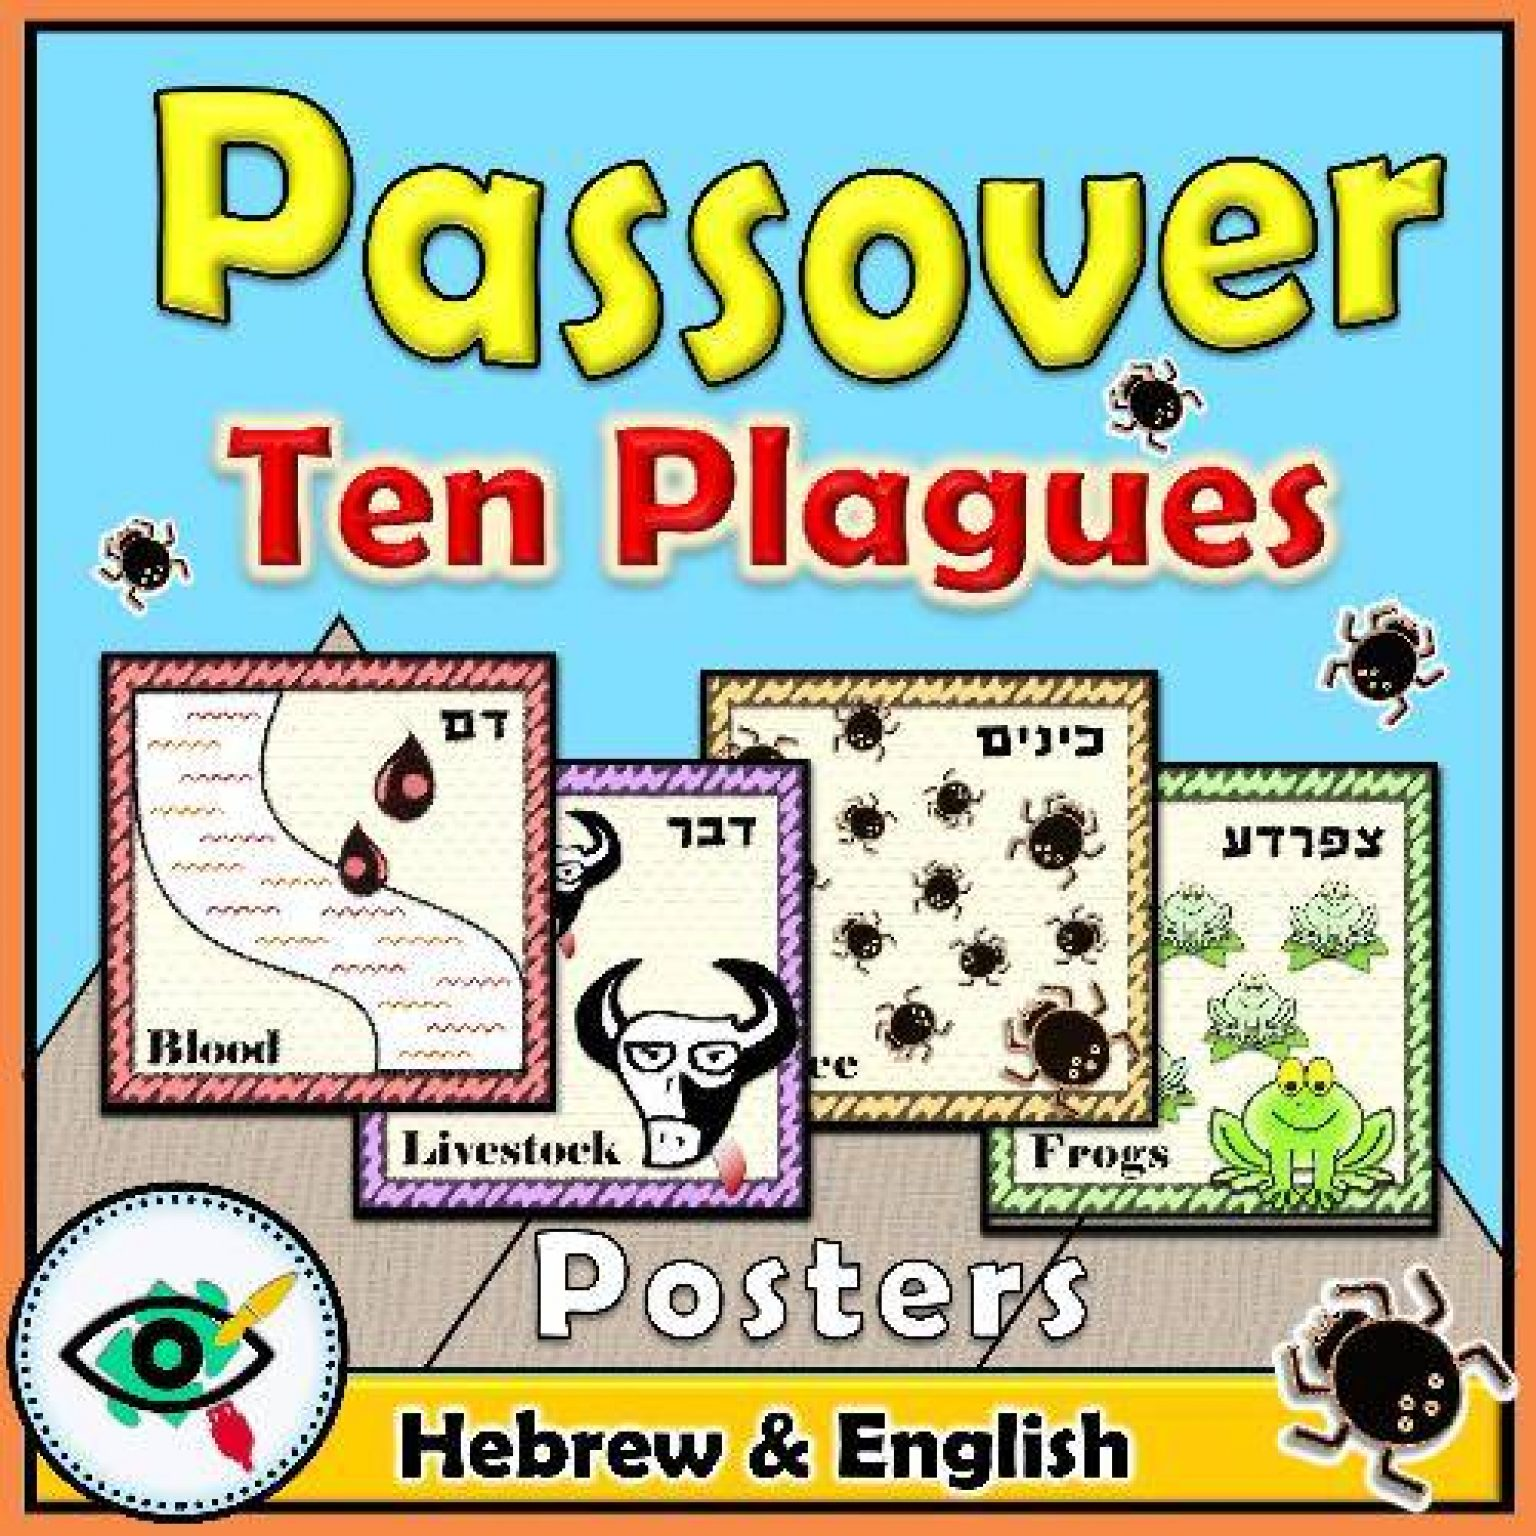 passover-ten-plagues-posters-pk-g6-title_resized